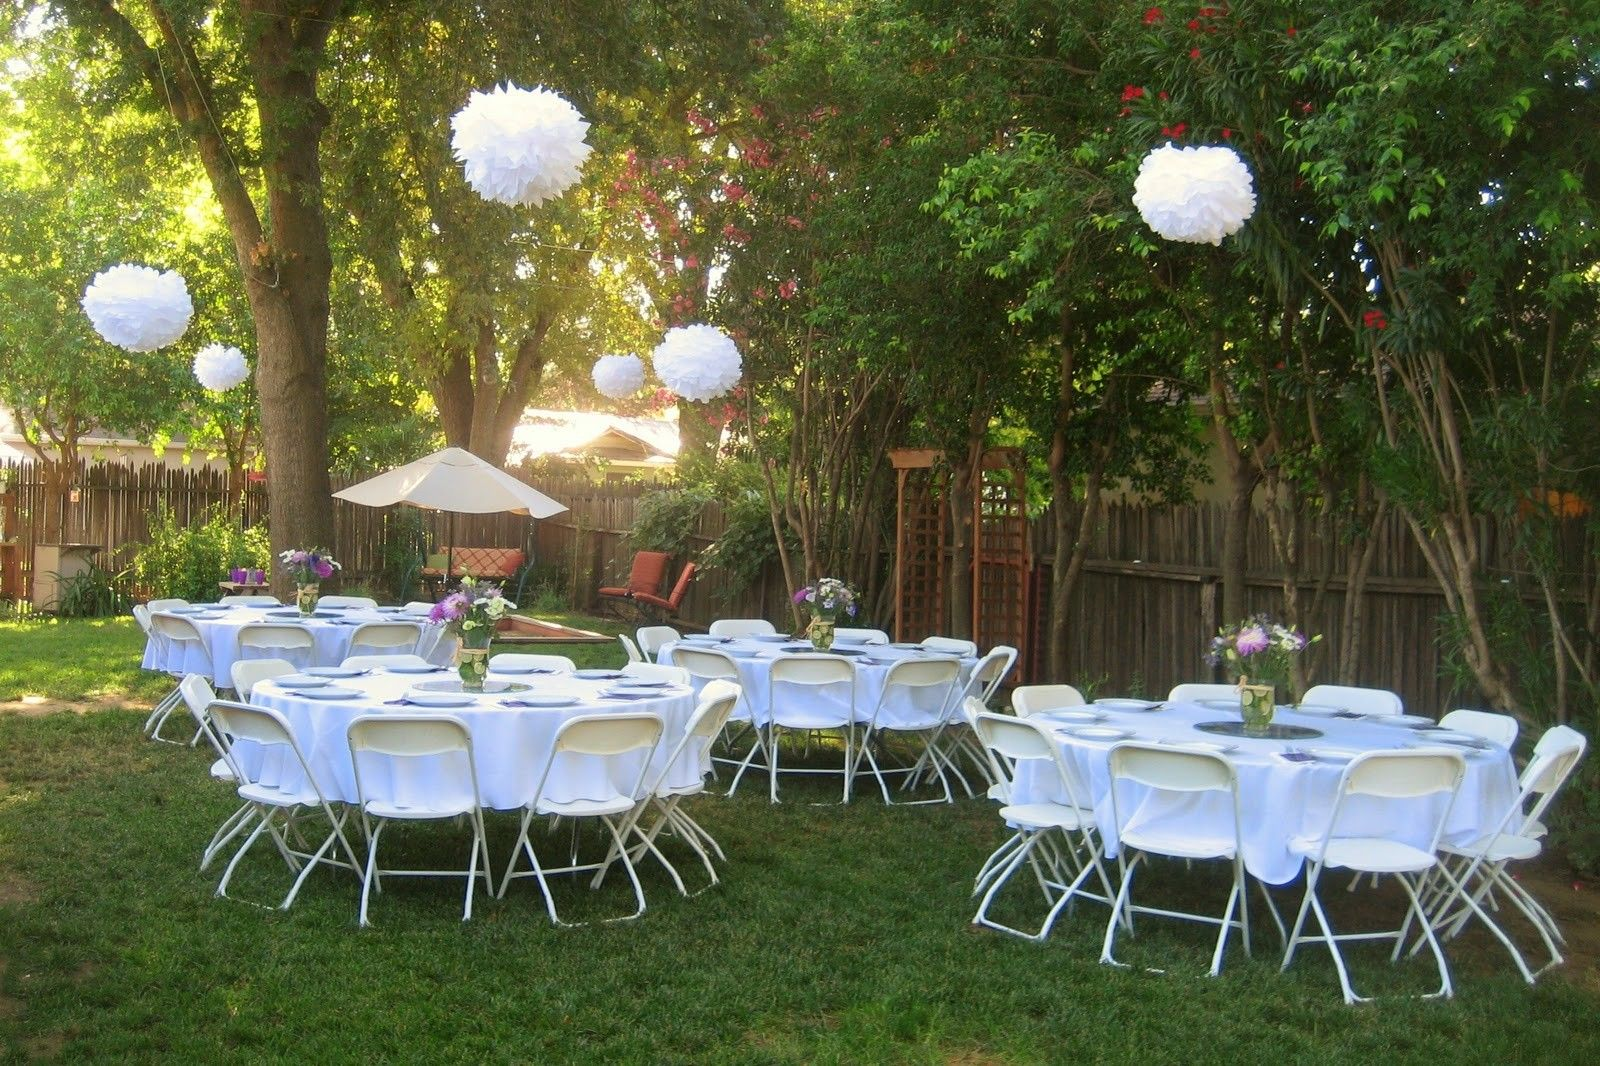 Patio Ideas For A Tight Budget: Our Backyard Wedding Reception On A Tight Budget